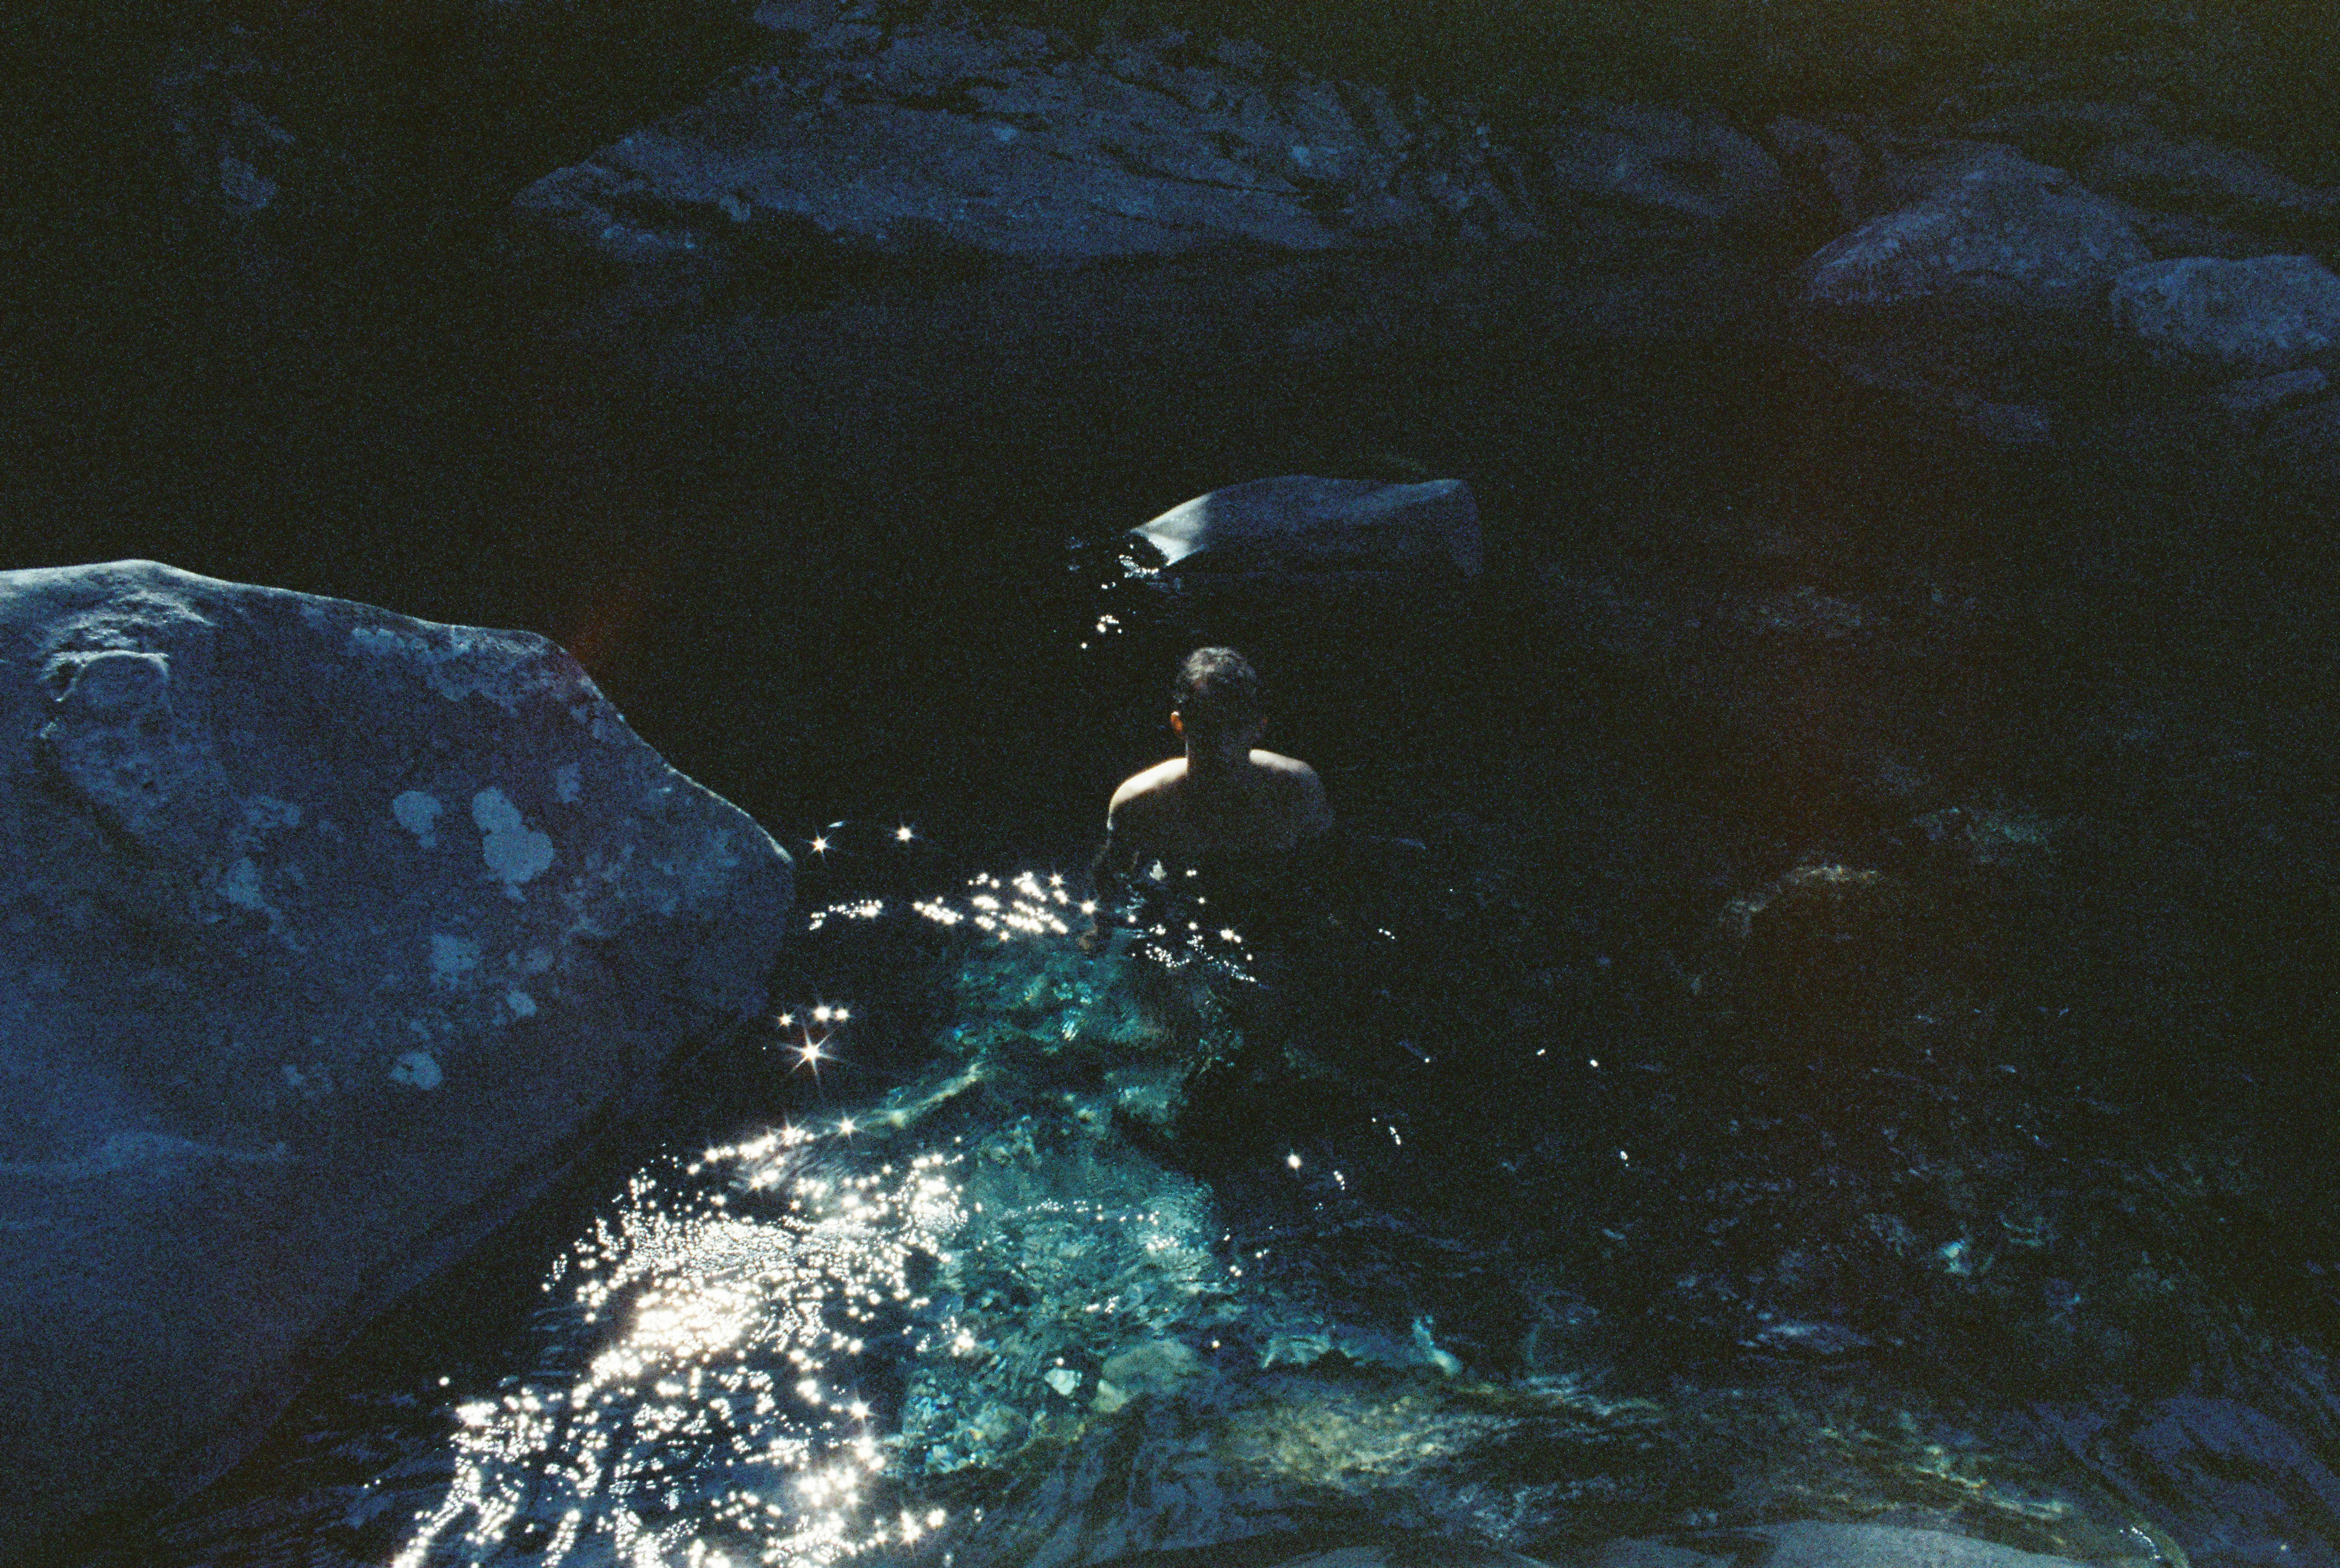 A short and slightly treacherous hike down to The Chasm - the water was clear but cold. Shot on Cinestill 800Tungsten HighSpeed Color Film